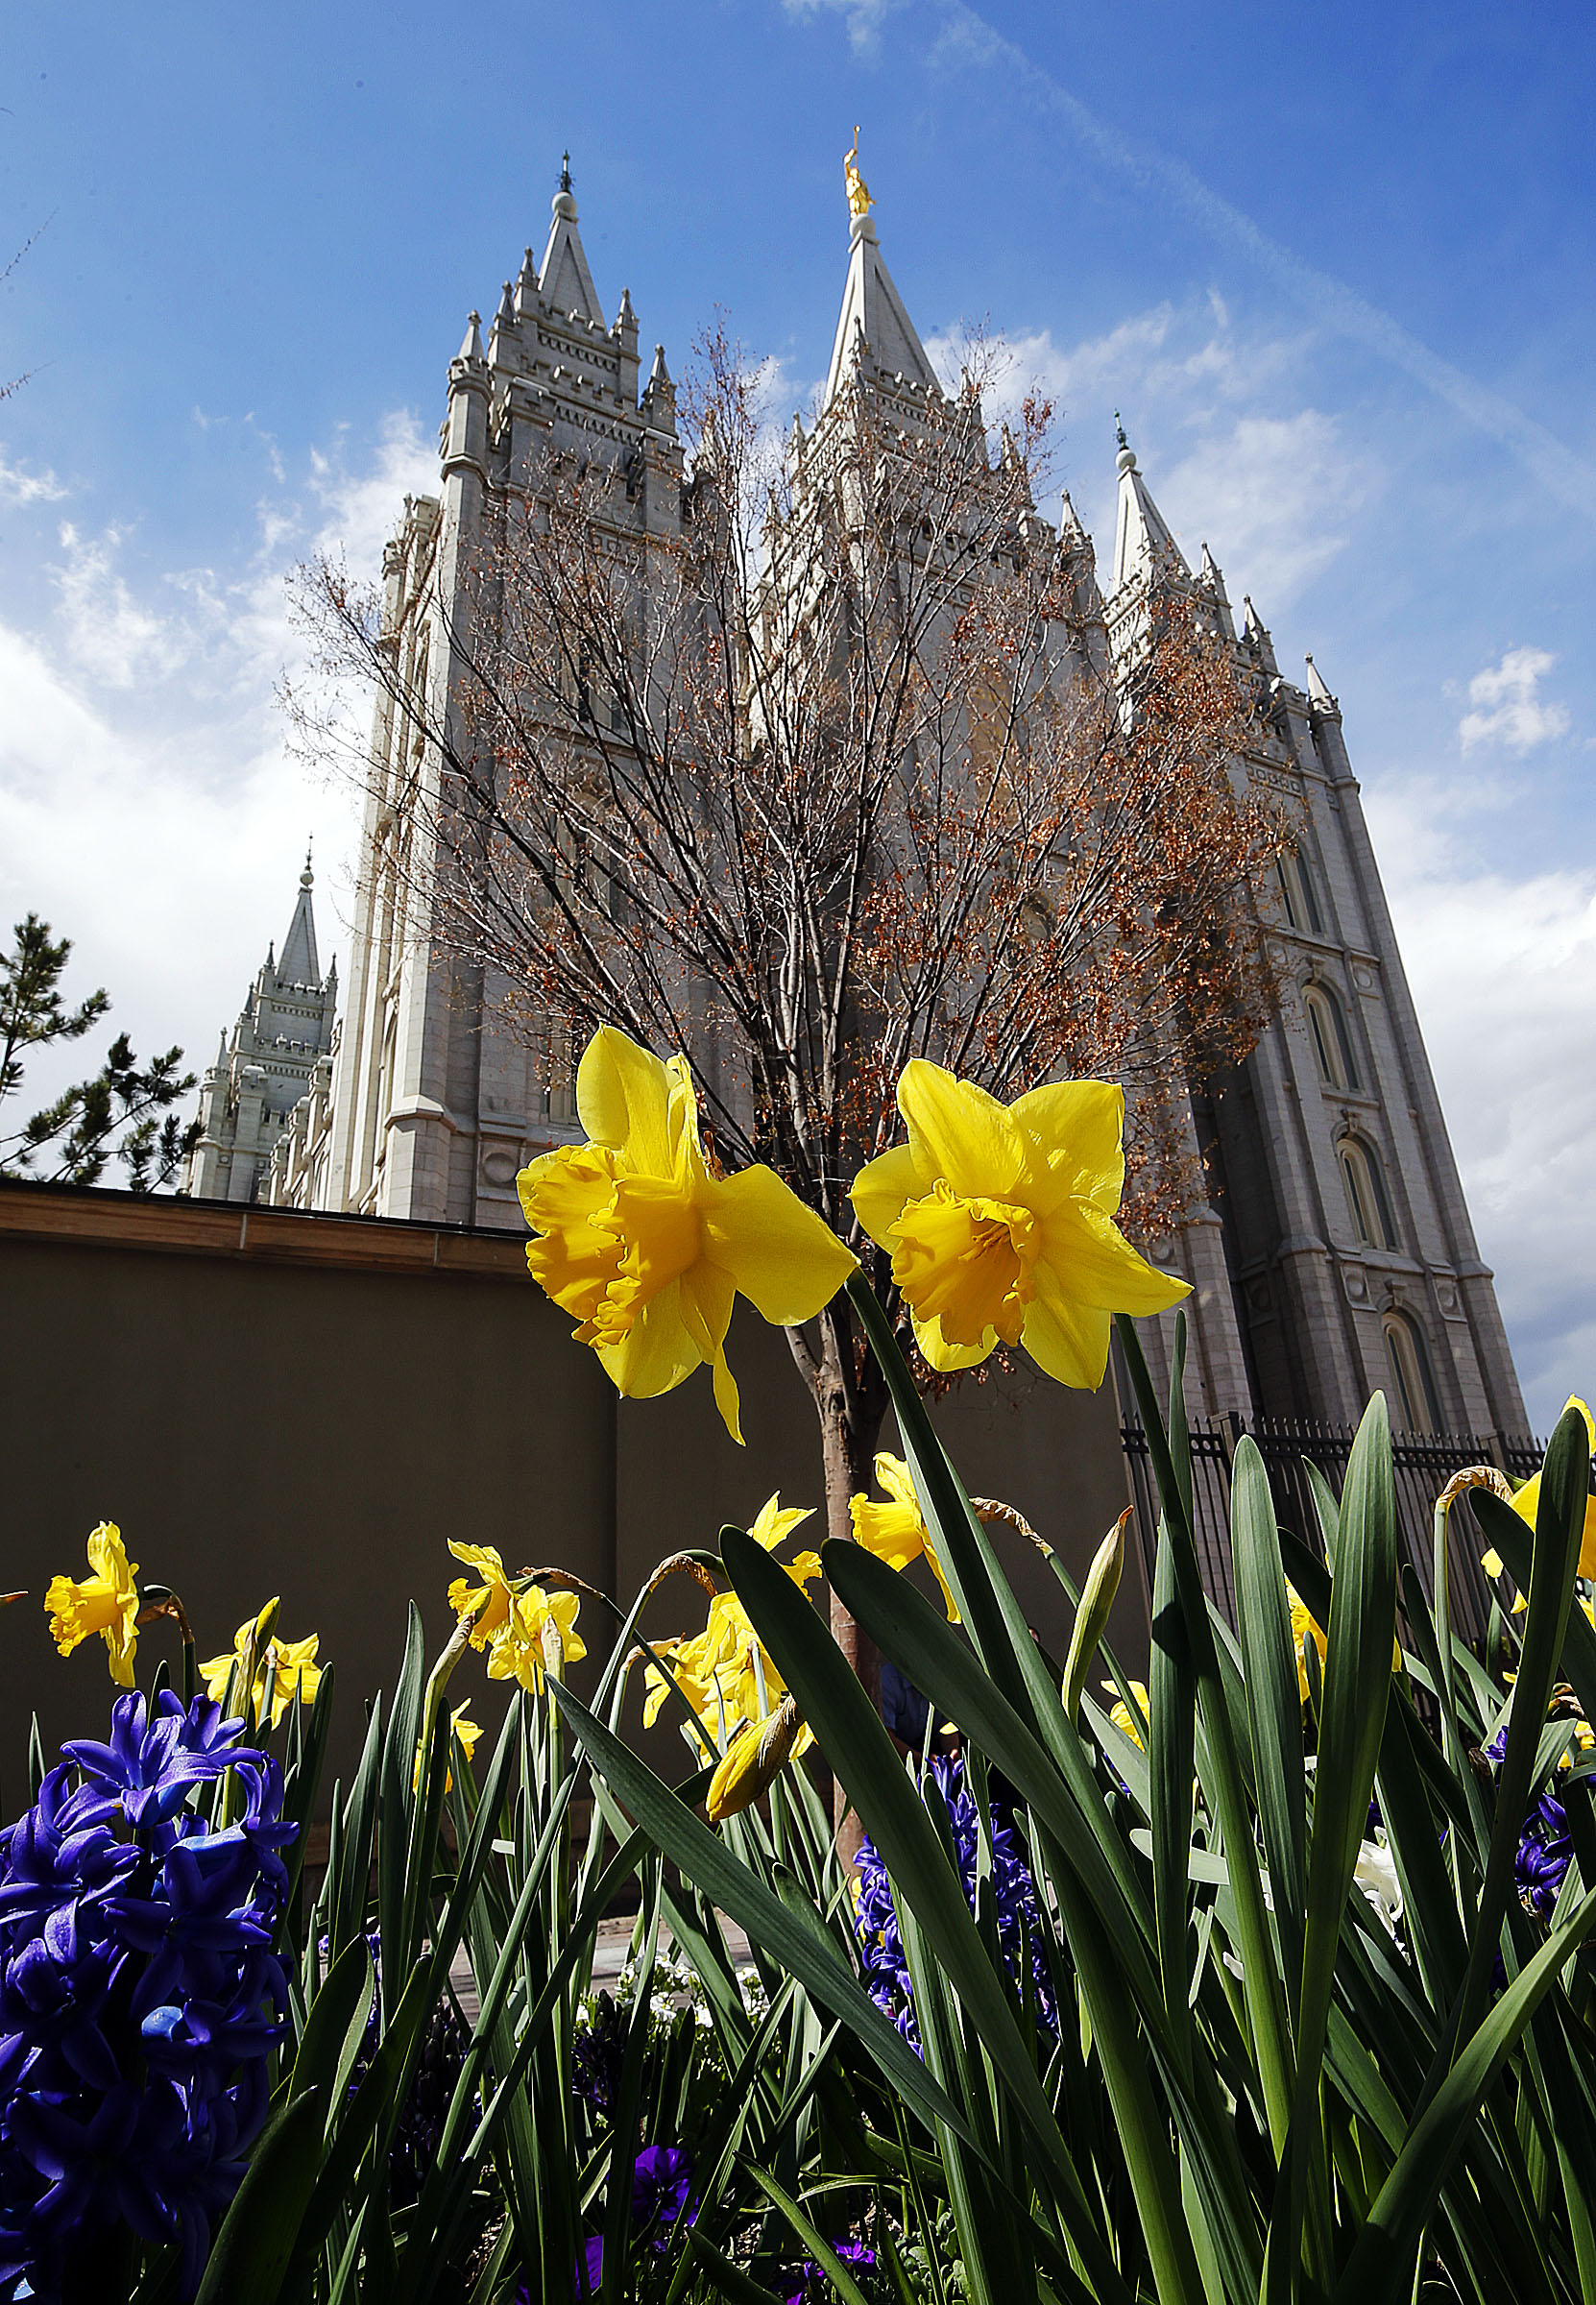 Flowers bloom on the Main Street Plaza in Salt Lake City on Friday, April 5, 2019. In the background is the Salt Lake Temple of The Church of Jesus Christ of Latter-day Saints.